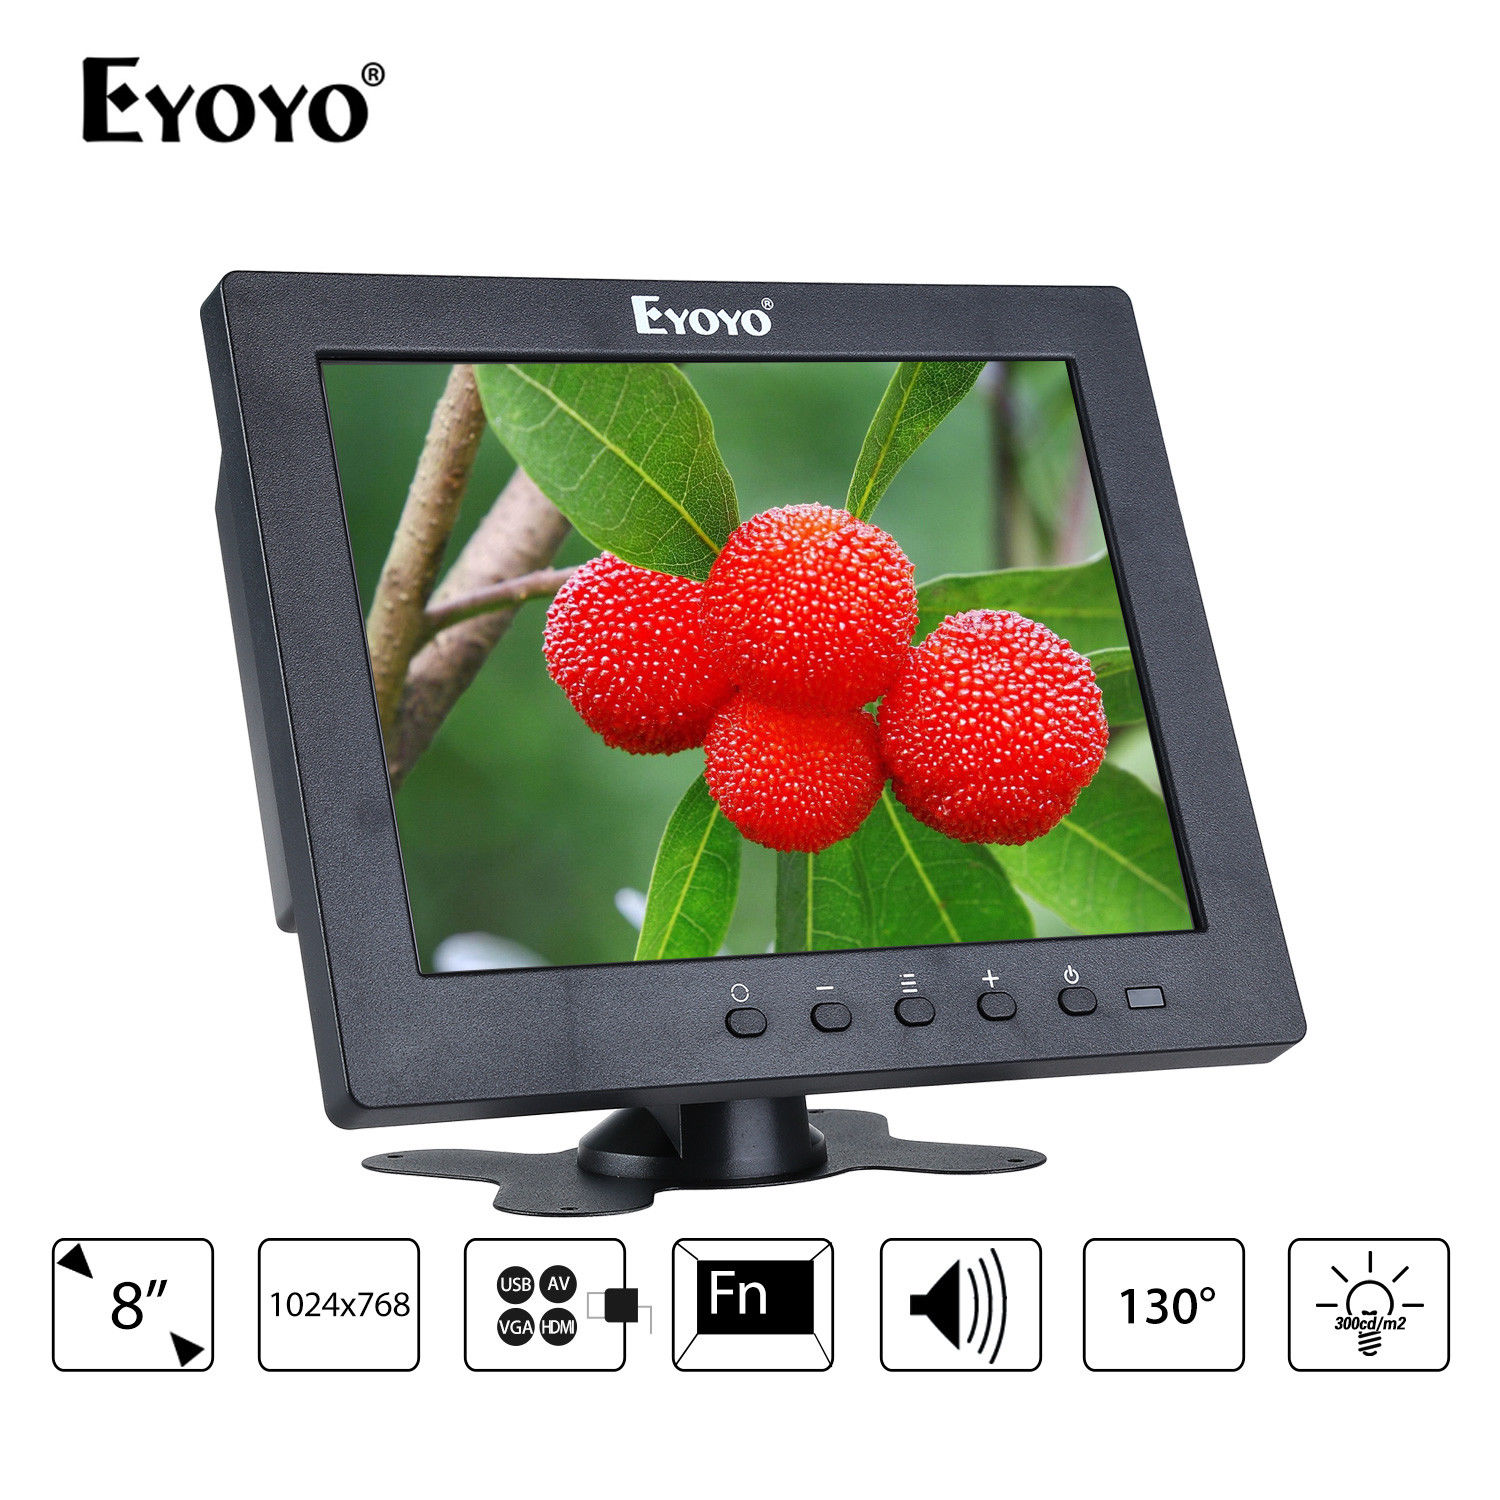 Eyoyo S801T Monitor 8 12ms 1024x768 LCD Screen Display With BNC/HDMI Output Built-in Loudspeakers For CCTV PC Laptop DVR Camera aputure digital 7inch lcd field video monitor v screen vs 1 finehd field monitor accepts hdmi av for dslr